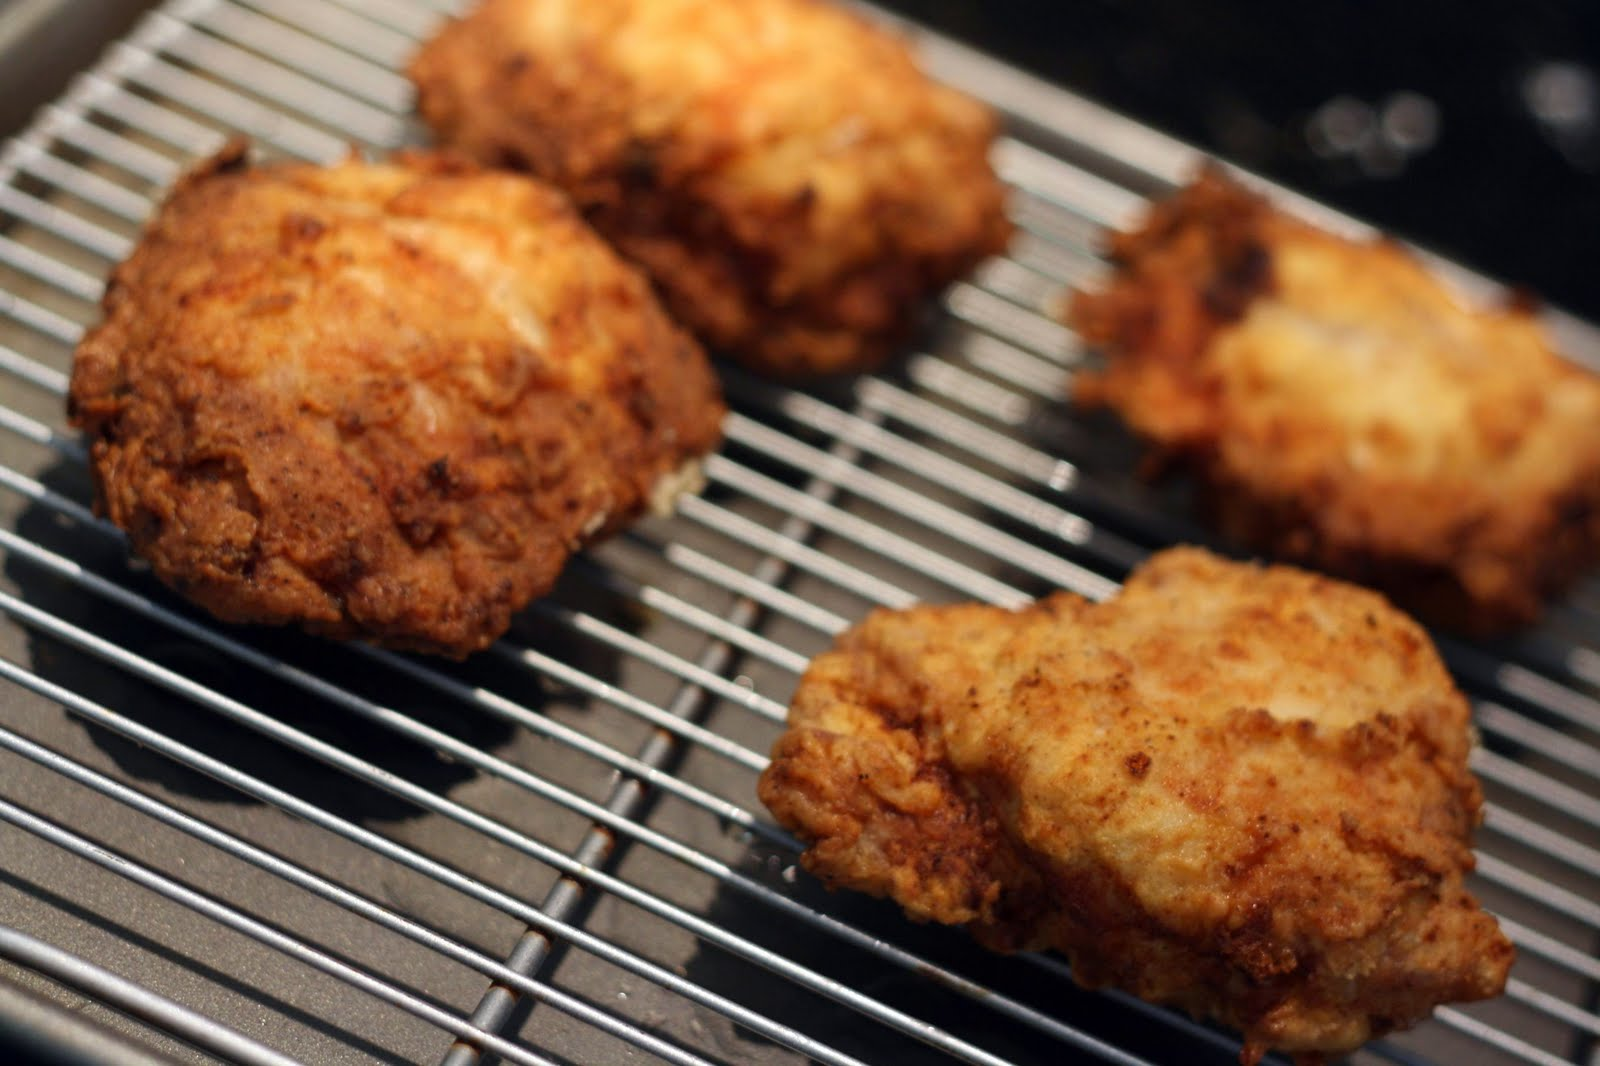 So tasty so yummy double dredged fried chicken it is the best show on the food network in years most importantly his recipes always look fantastic forumfinder Image collections